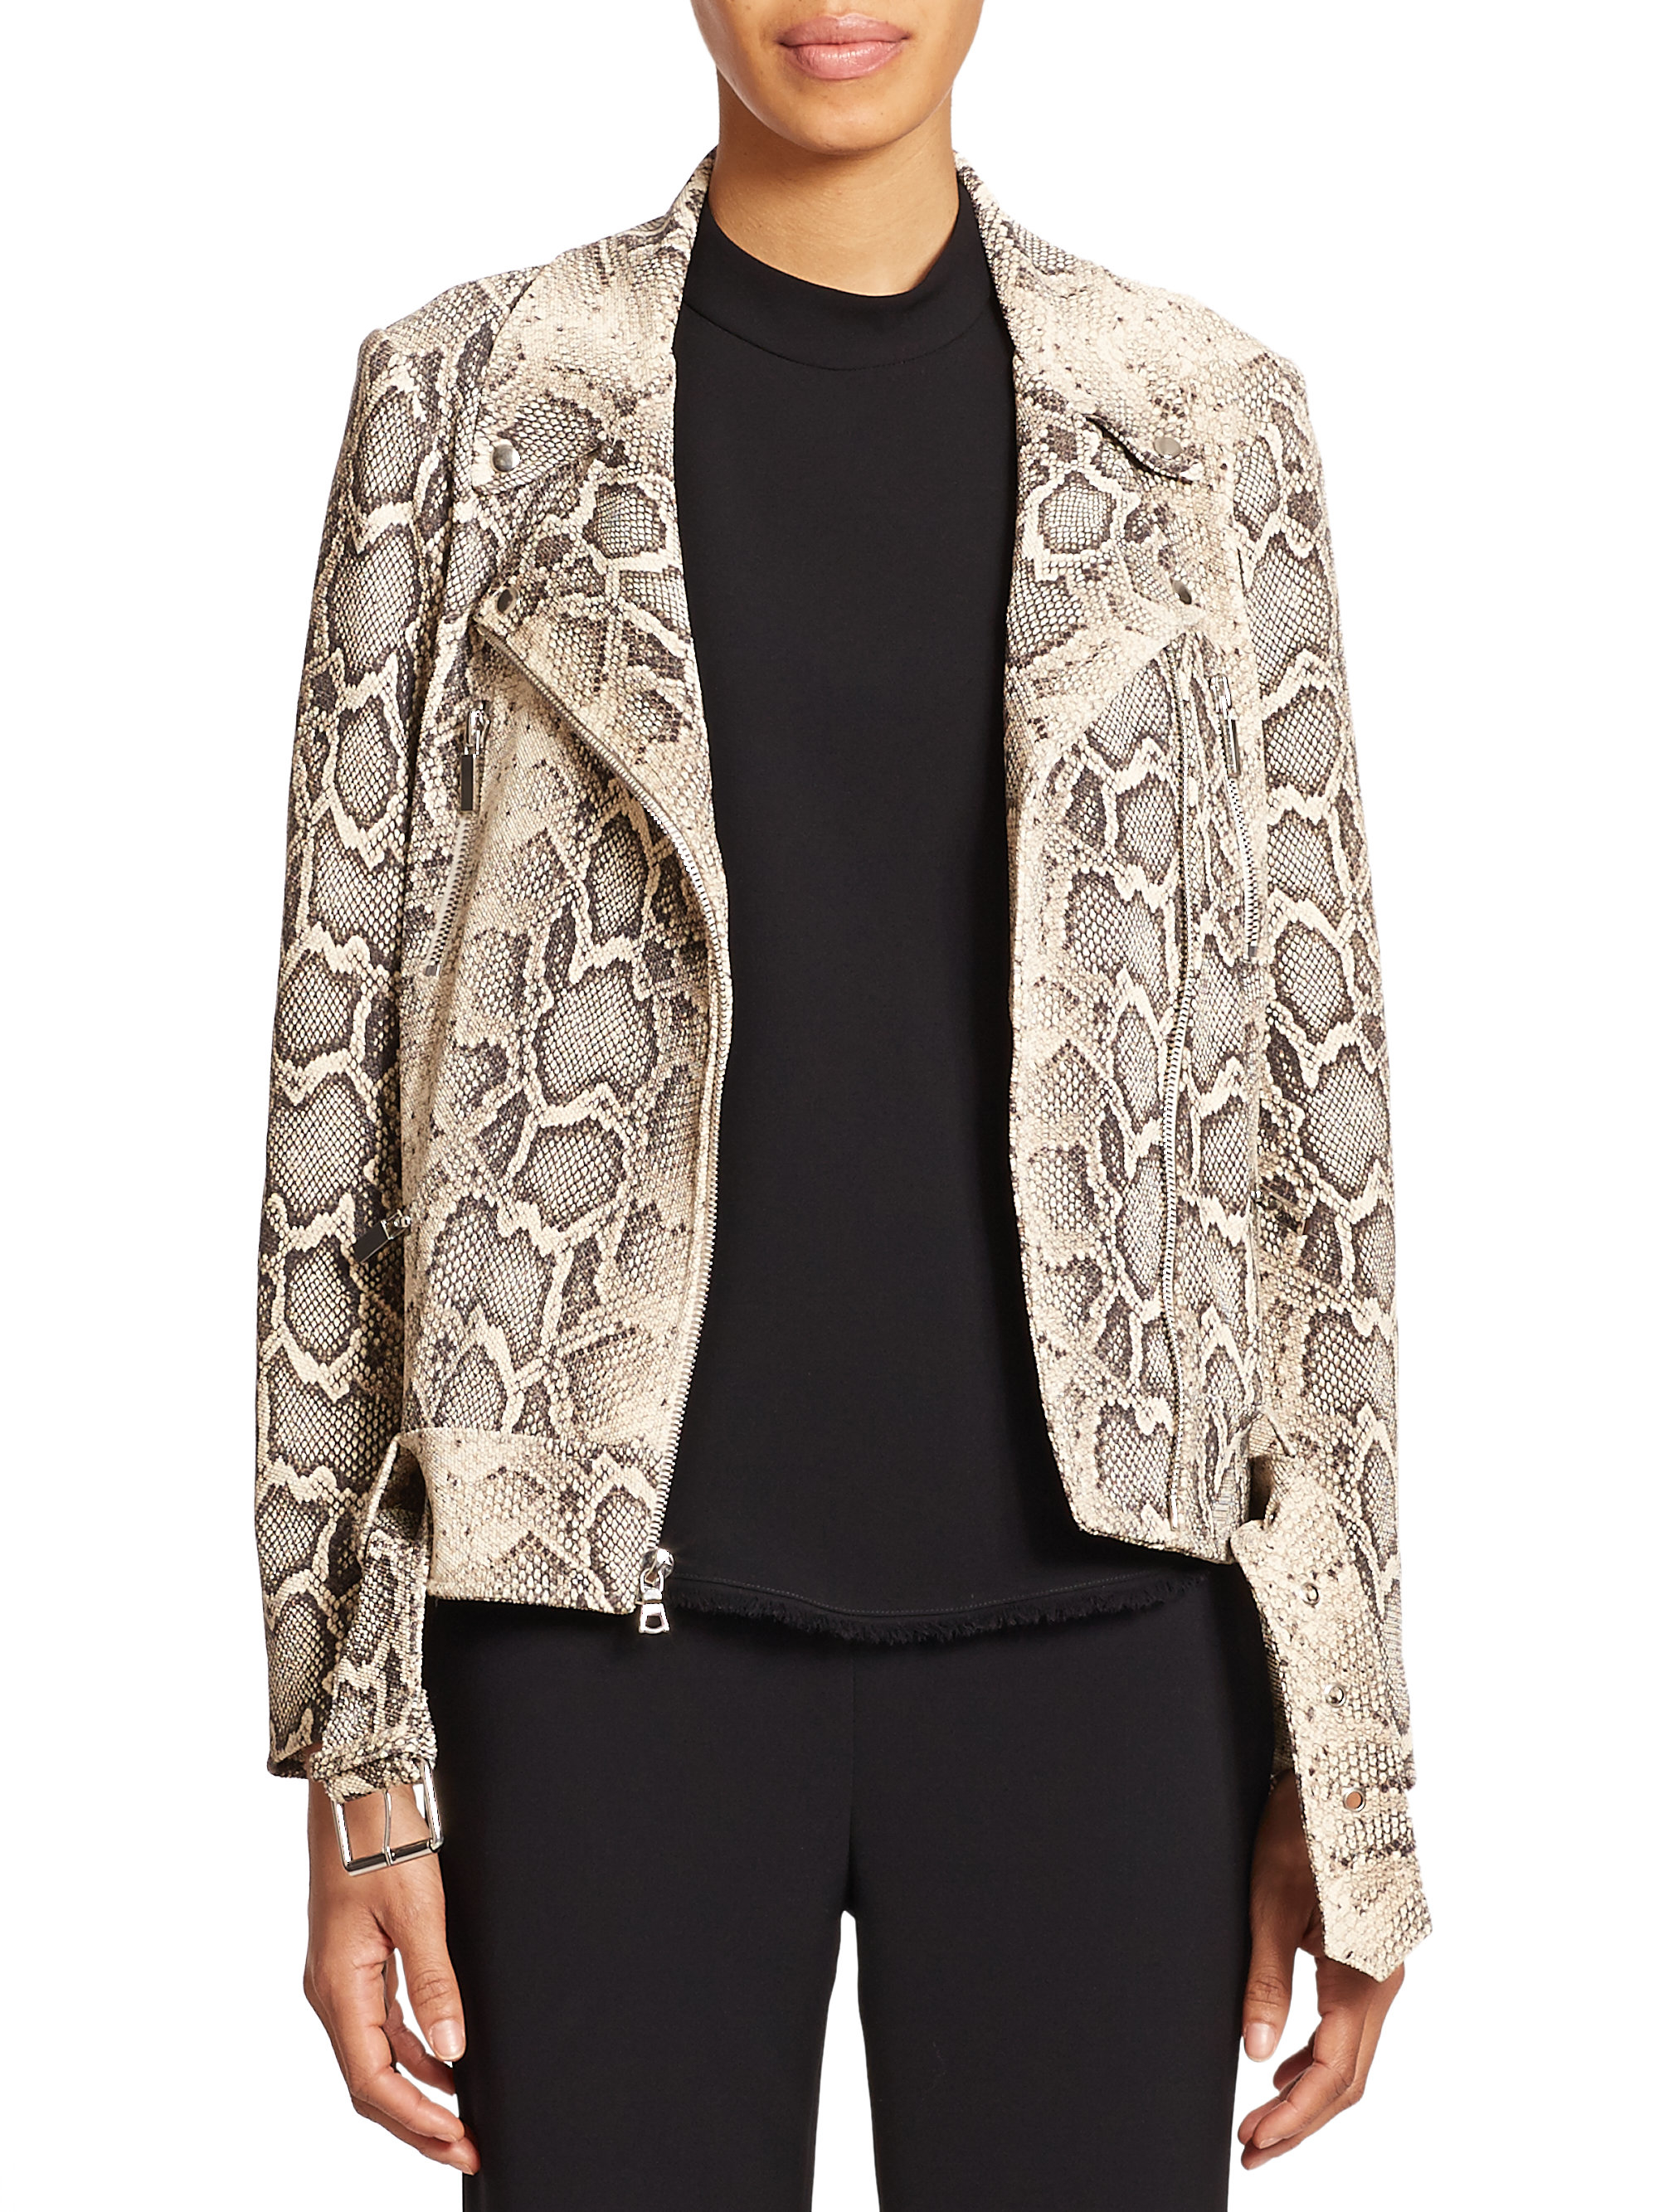 Elizabeth and James Corlyn Python-Print Leather Jacket